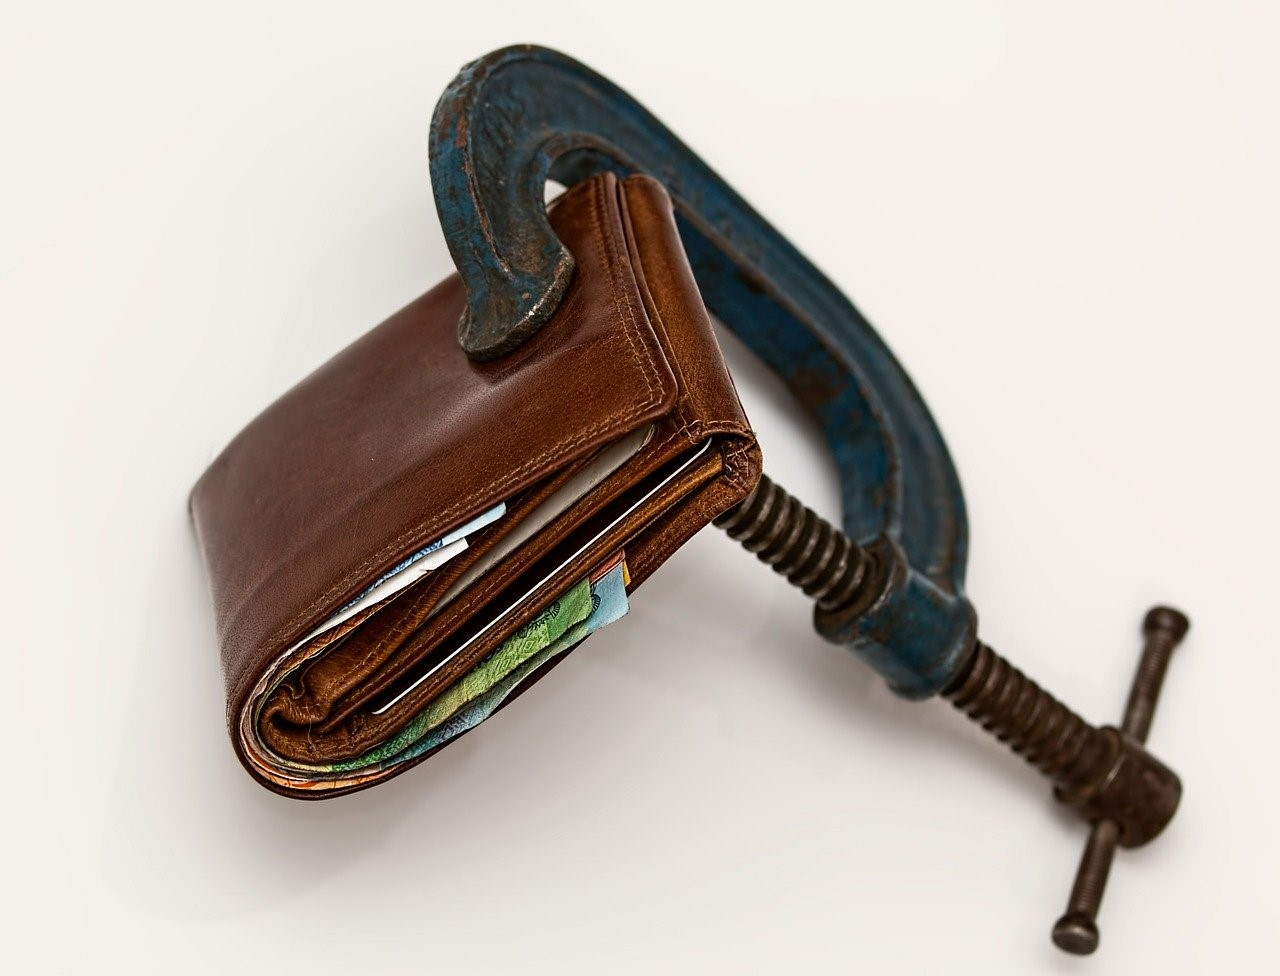 be sure to set aside sufficient saving when planning for home loan repayments